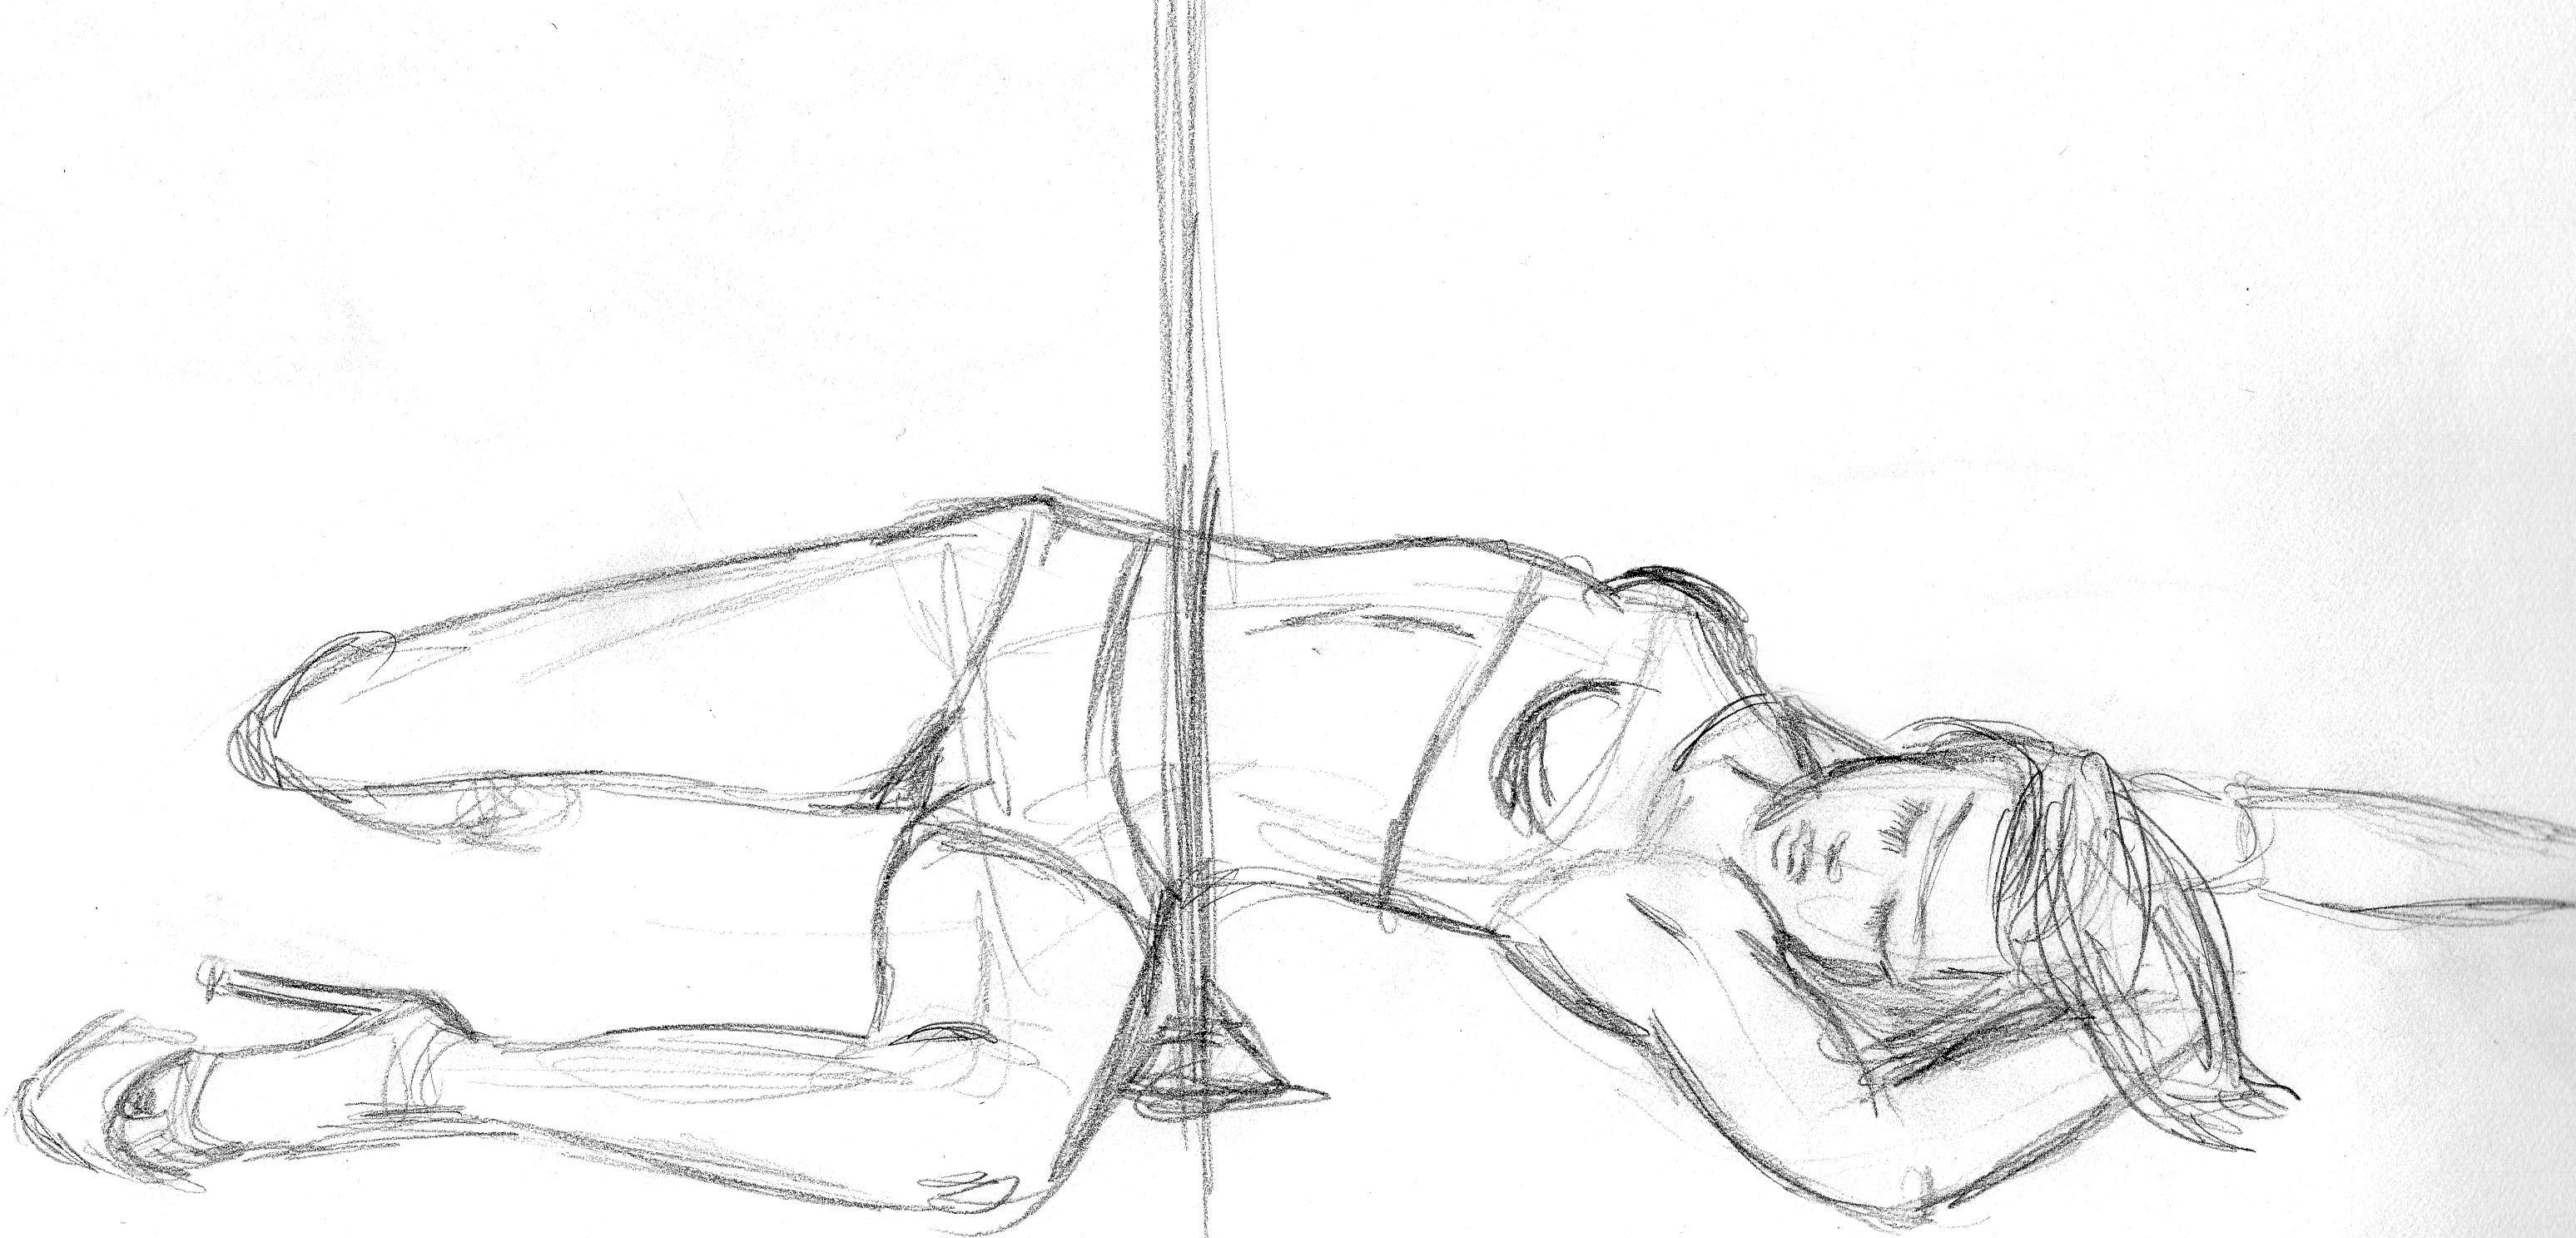 Pole Dancer - Pencil Sketch